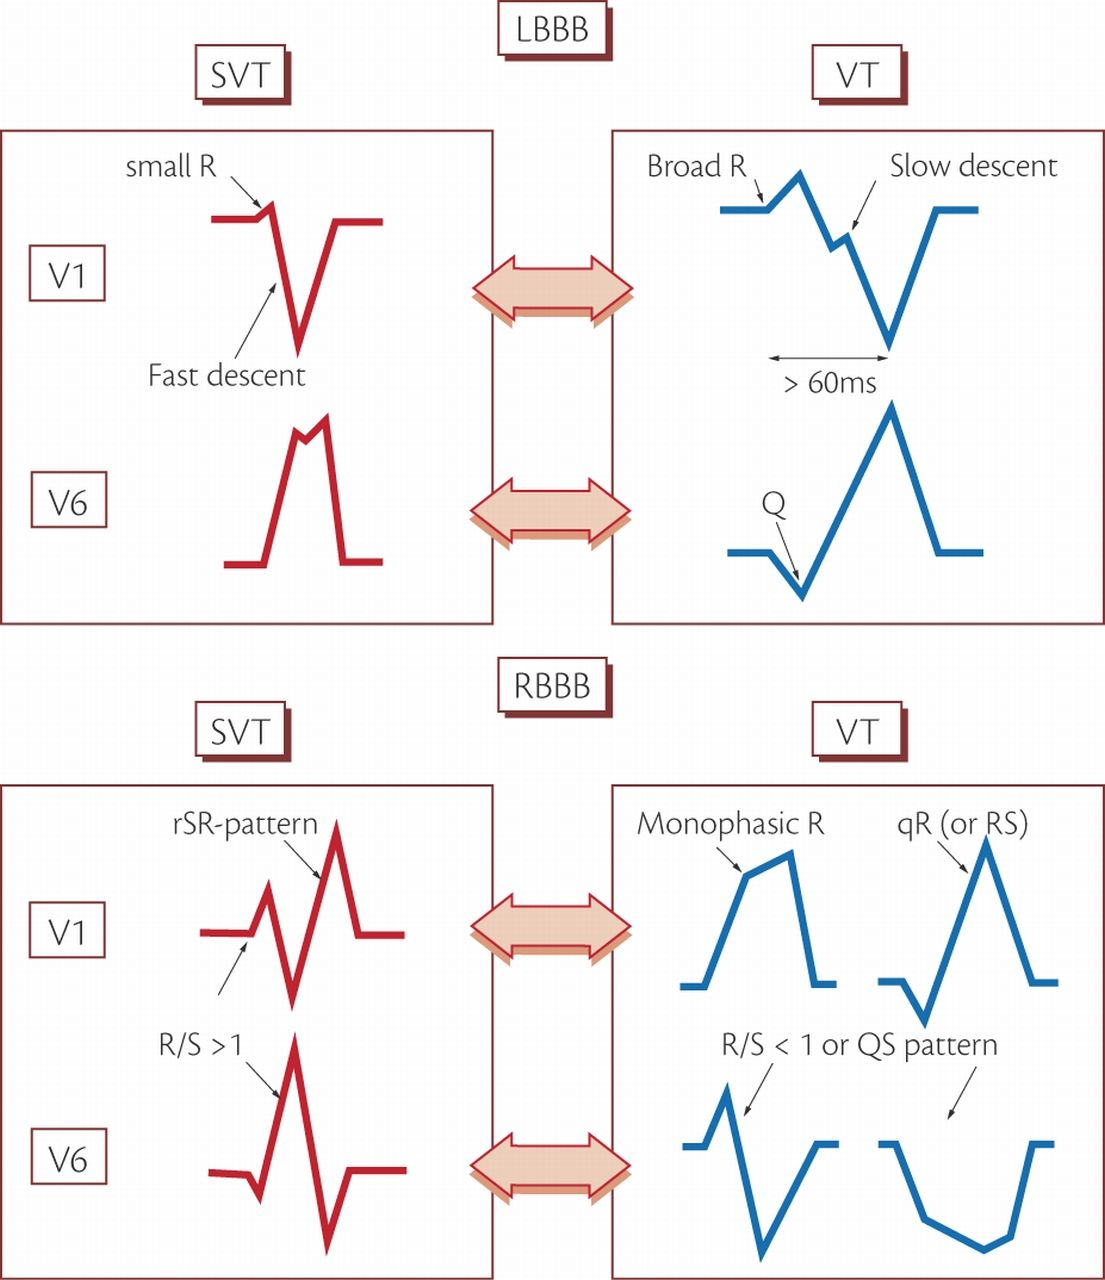 Ekg Placement Of Leads And Diagram Review Ebooks